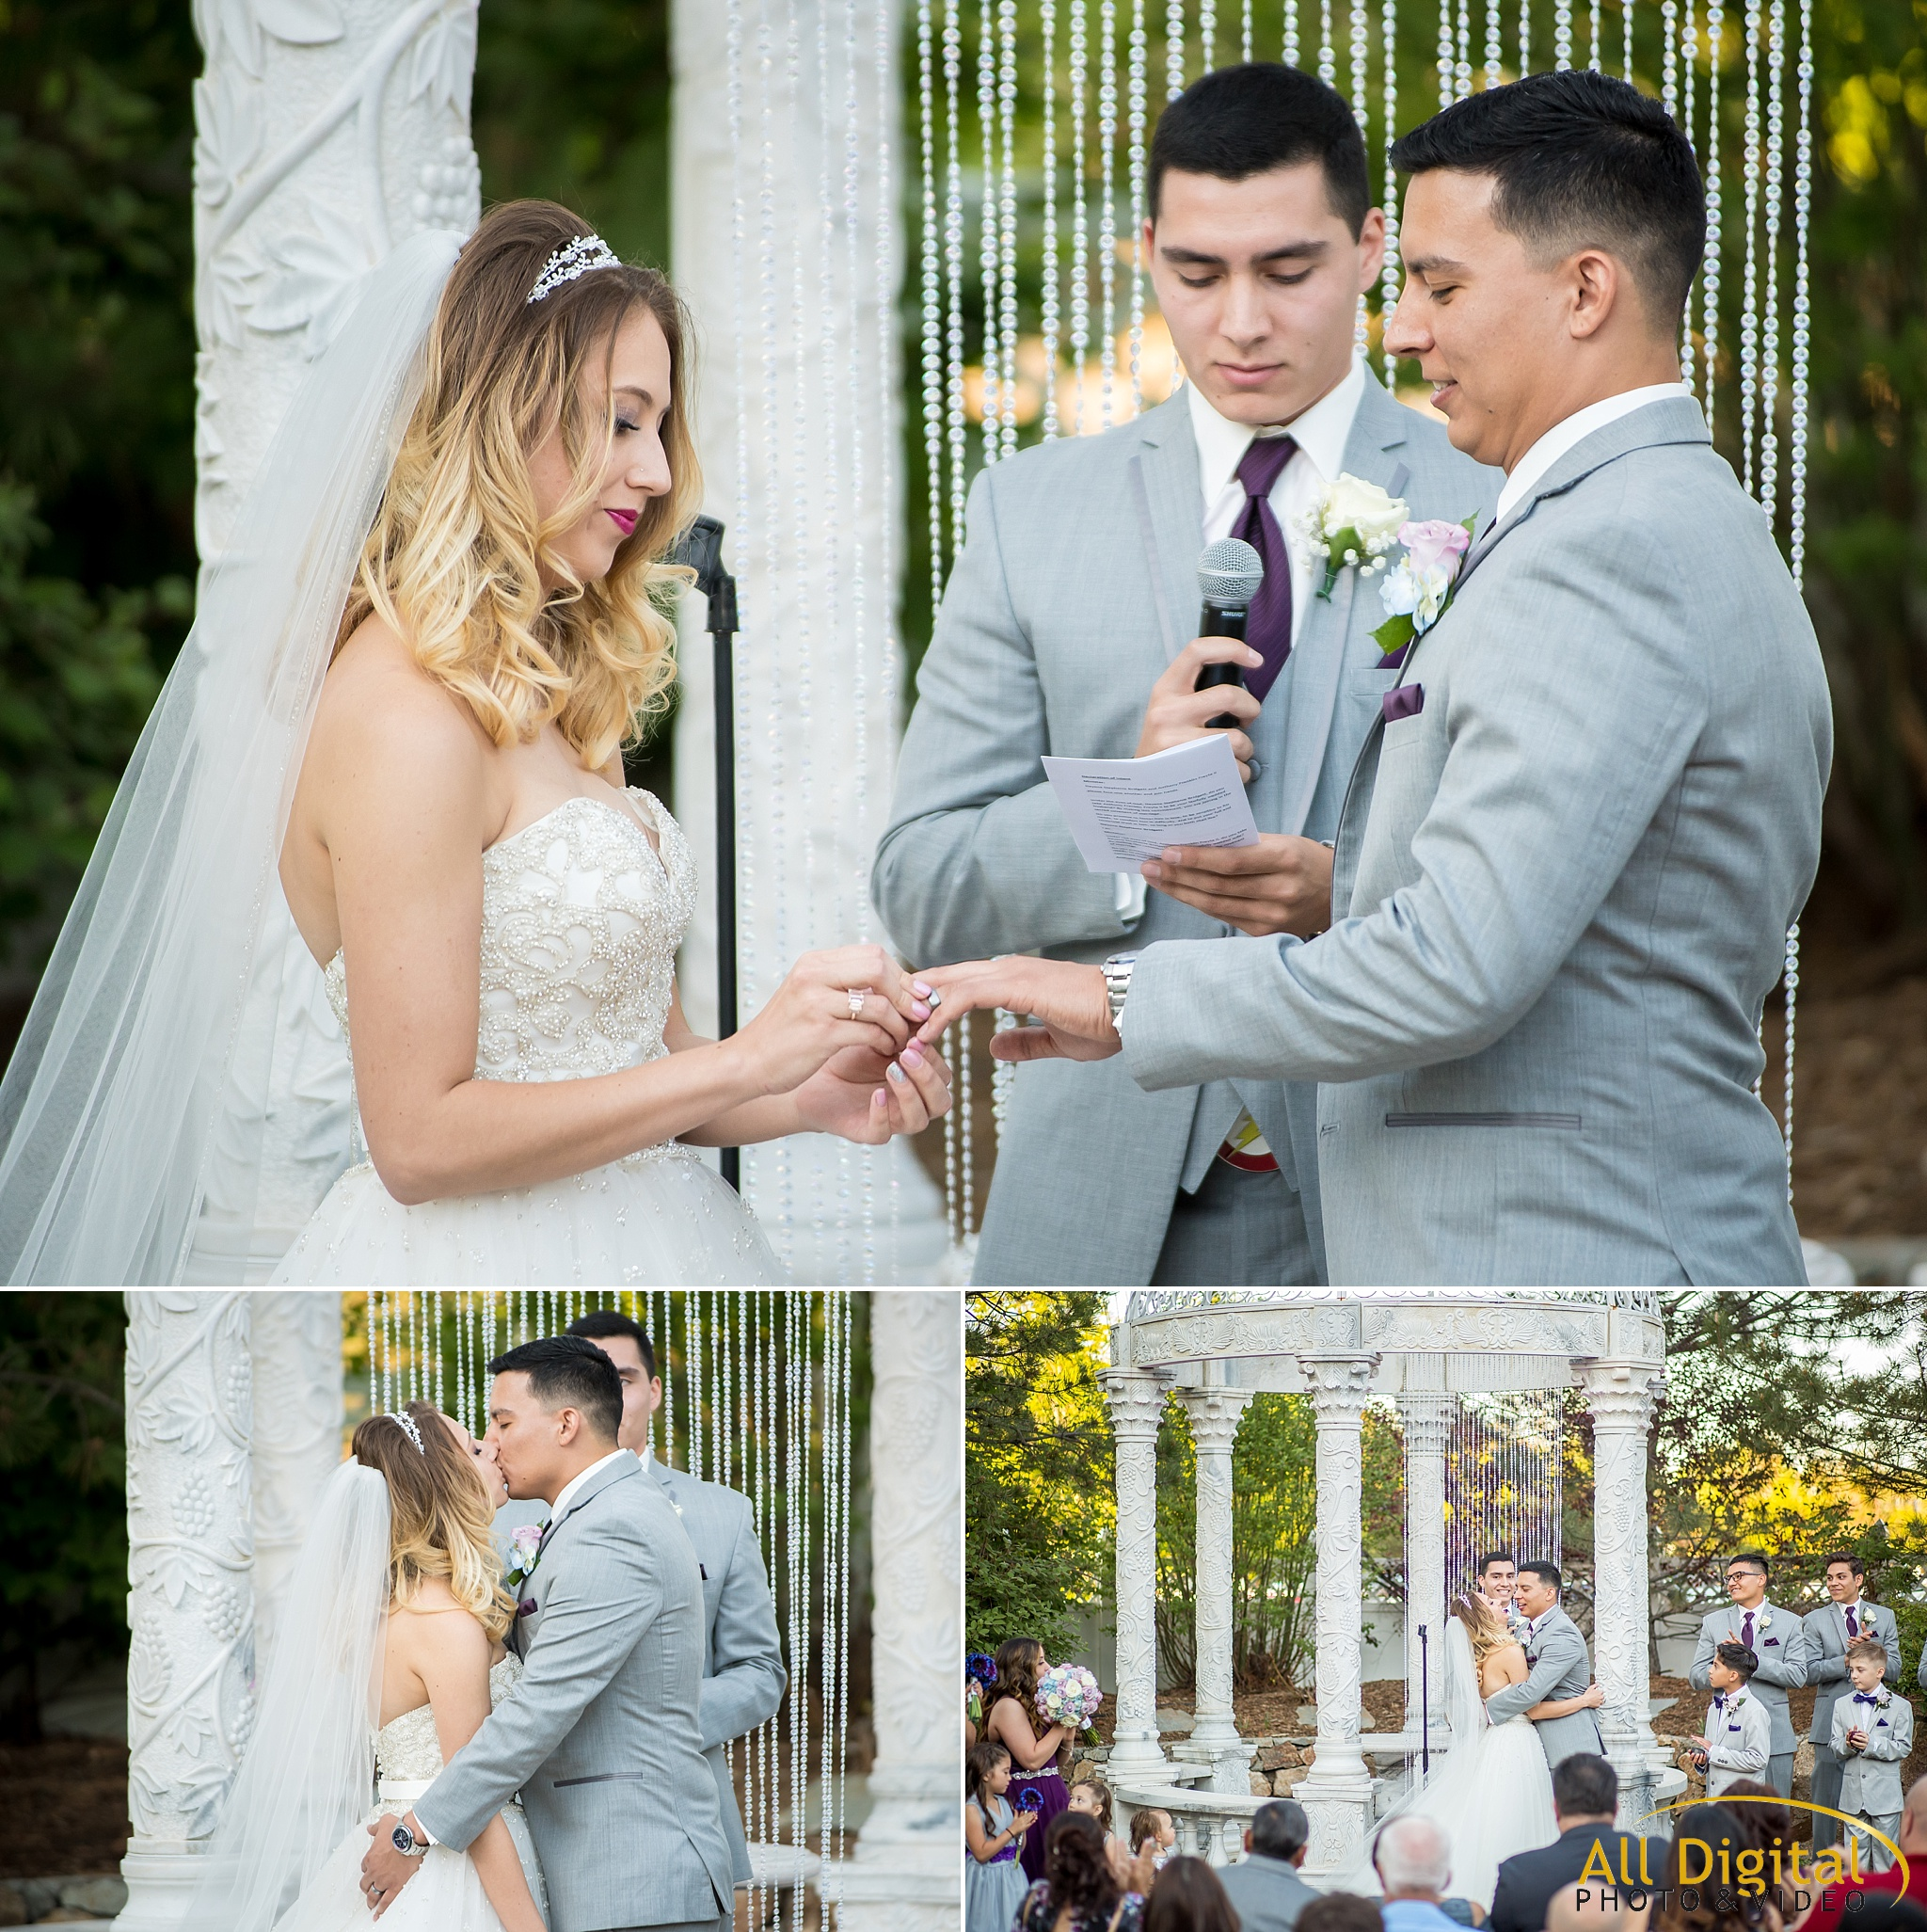 Exchanging rings and first kiss during the wedding ceremony at Stonebrook Manor.